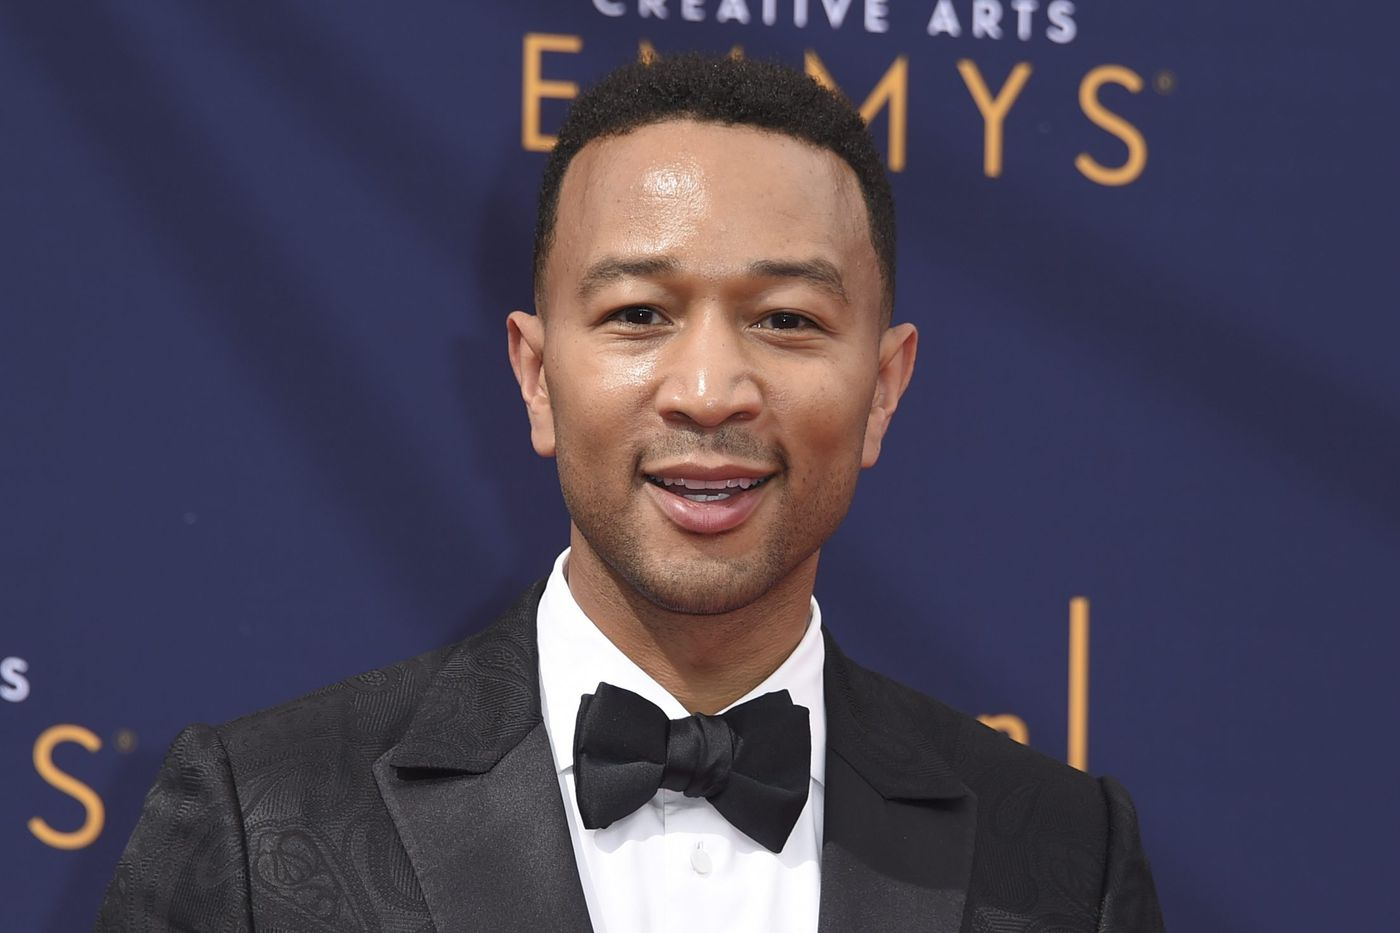 John Legend secures EGOT after winning an Emmy for 'Jesus Christ Superstar'